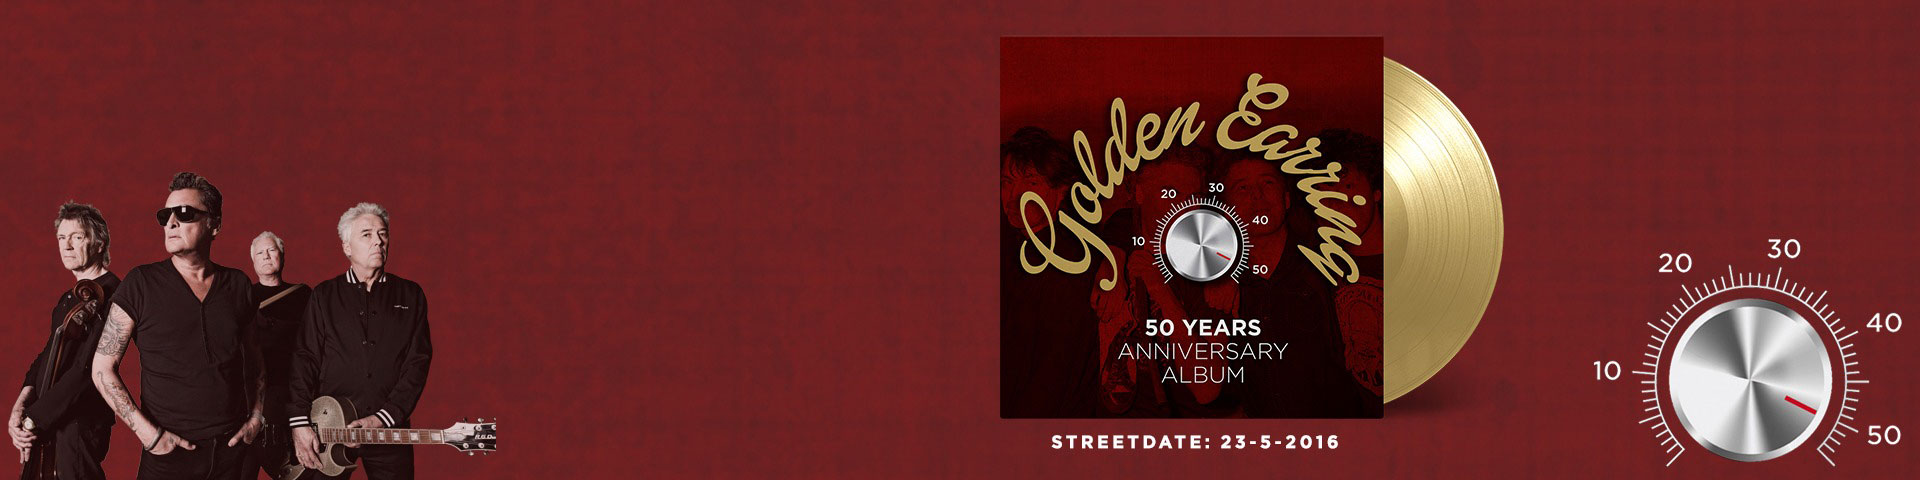 GOLDEN EARRING 50 YEARS